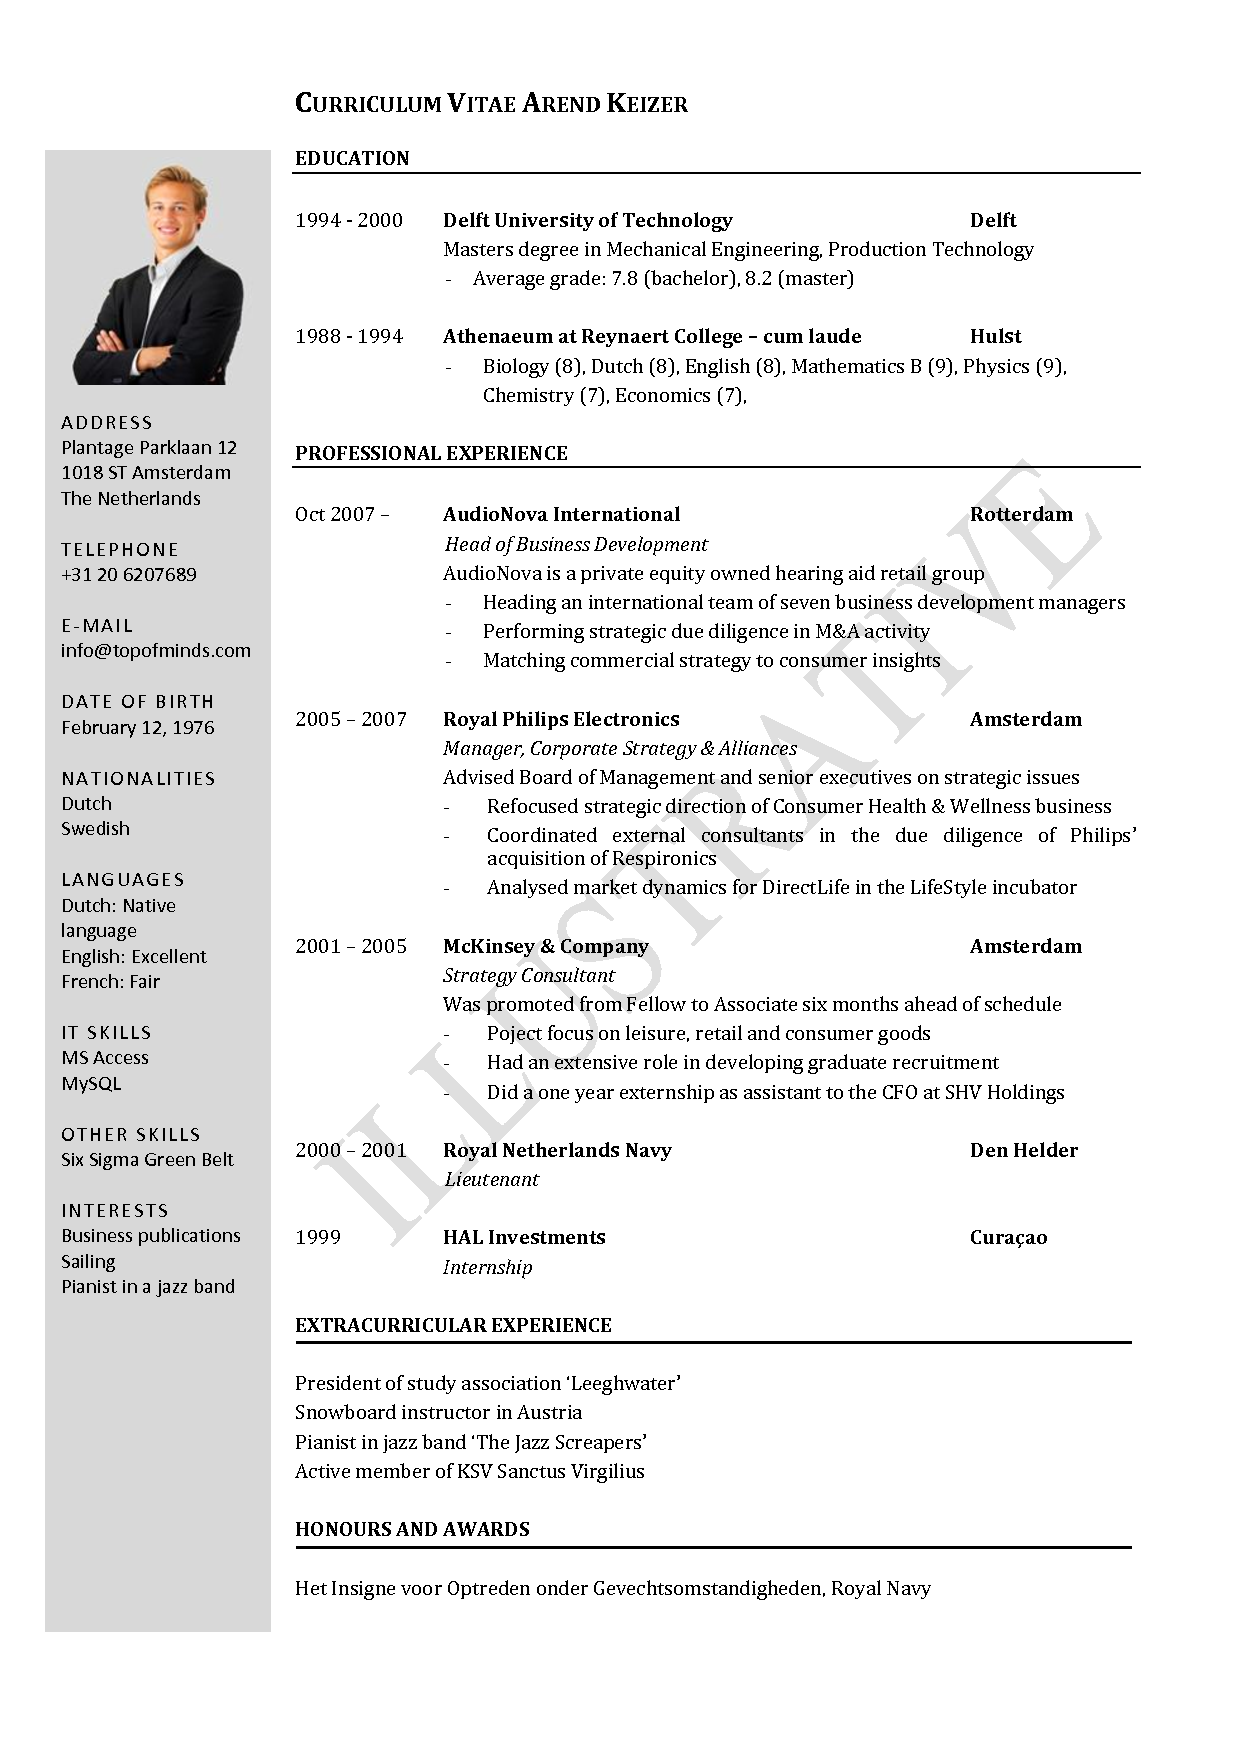 cv curriculum vitae formats templates | homework folders | resume